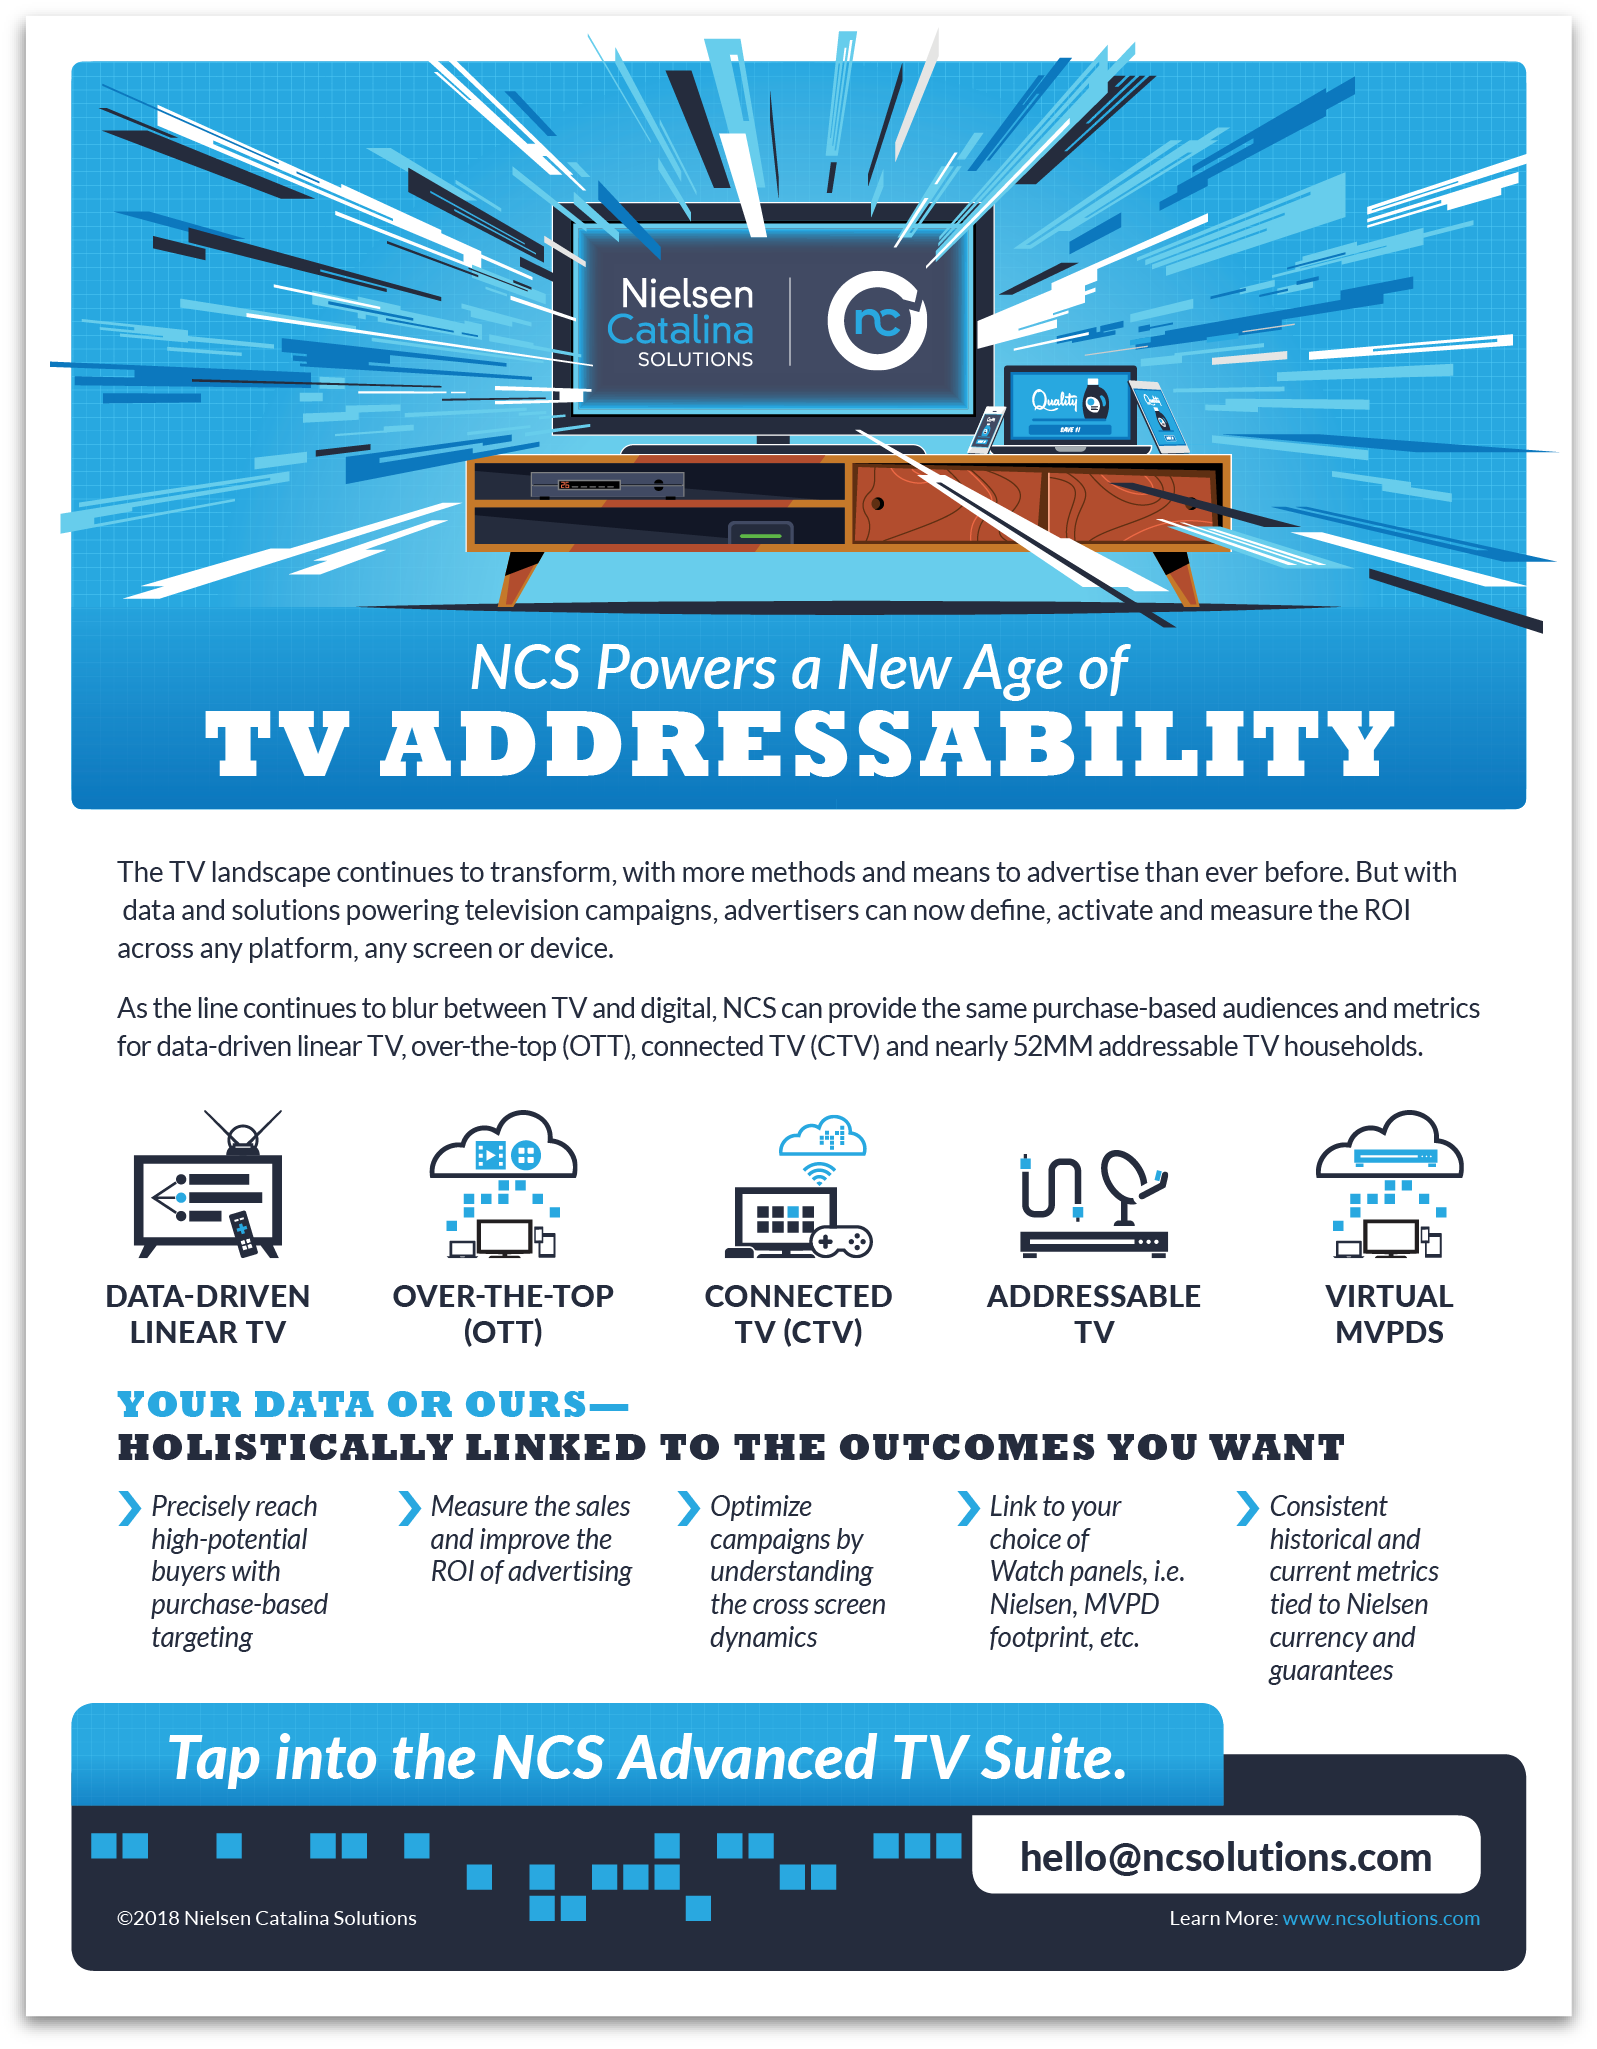 Sales One Sheet - A high-level product summary of Advanced TV's capabilities and value proposition.